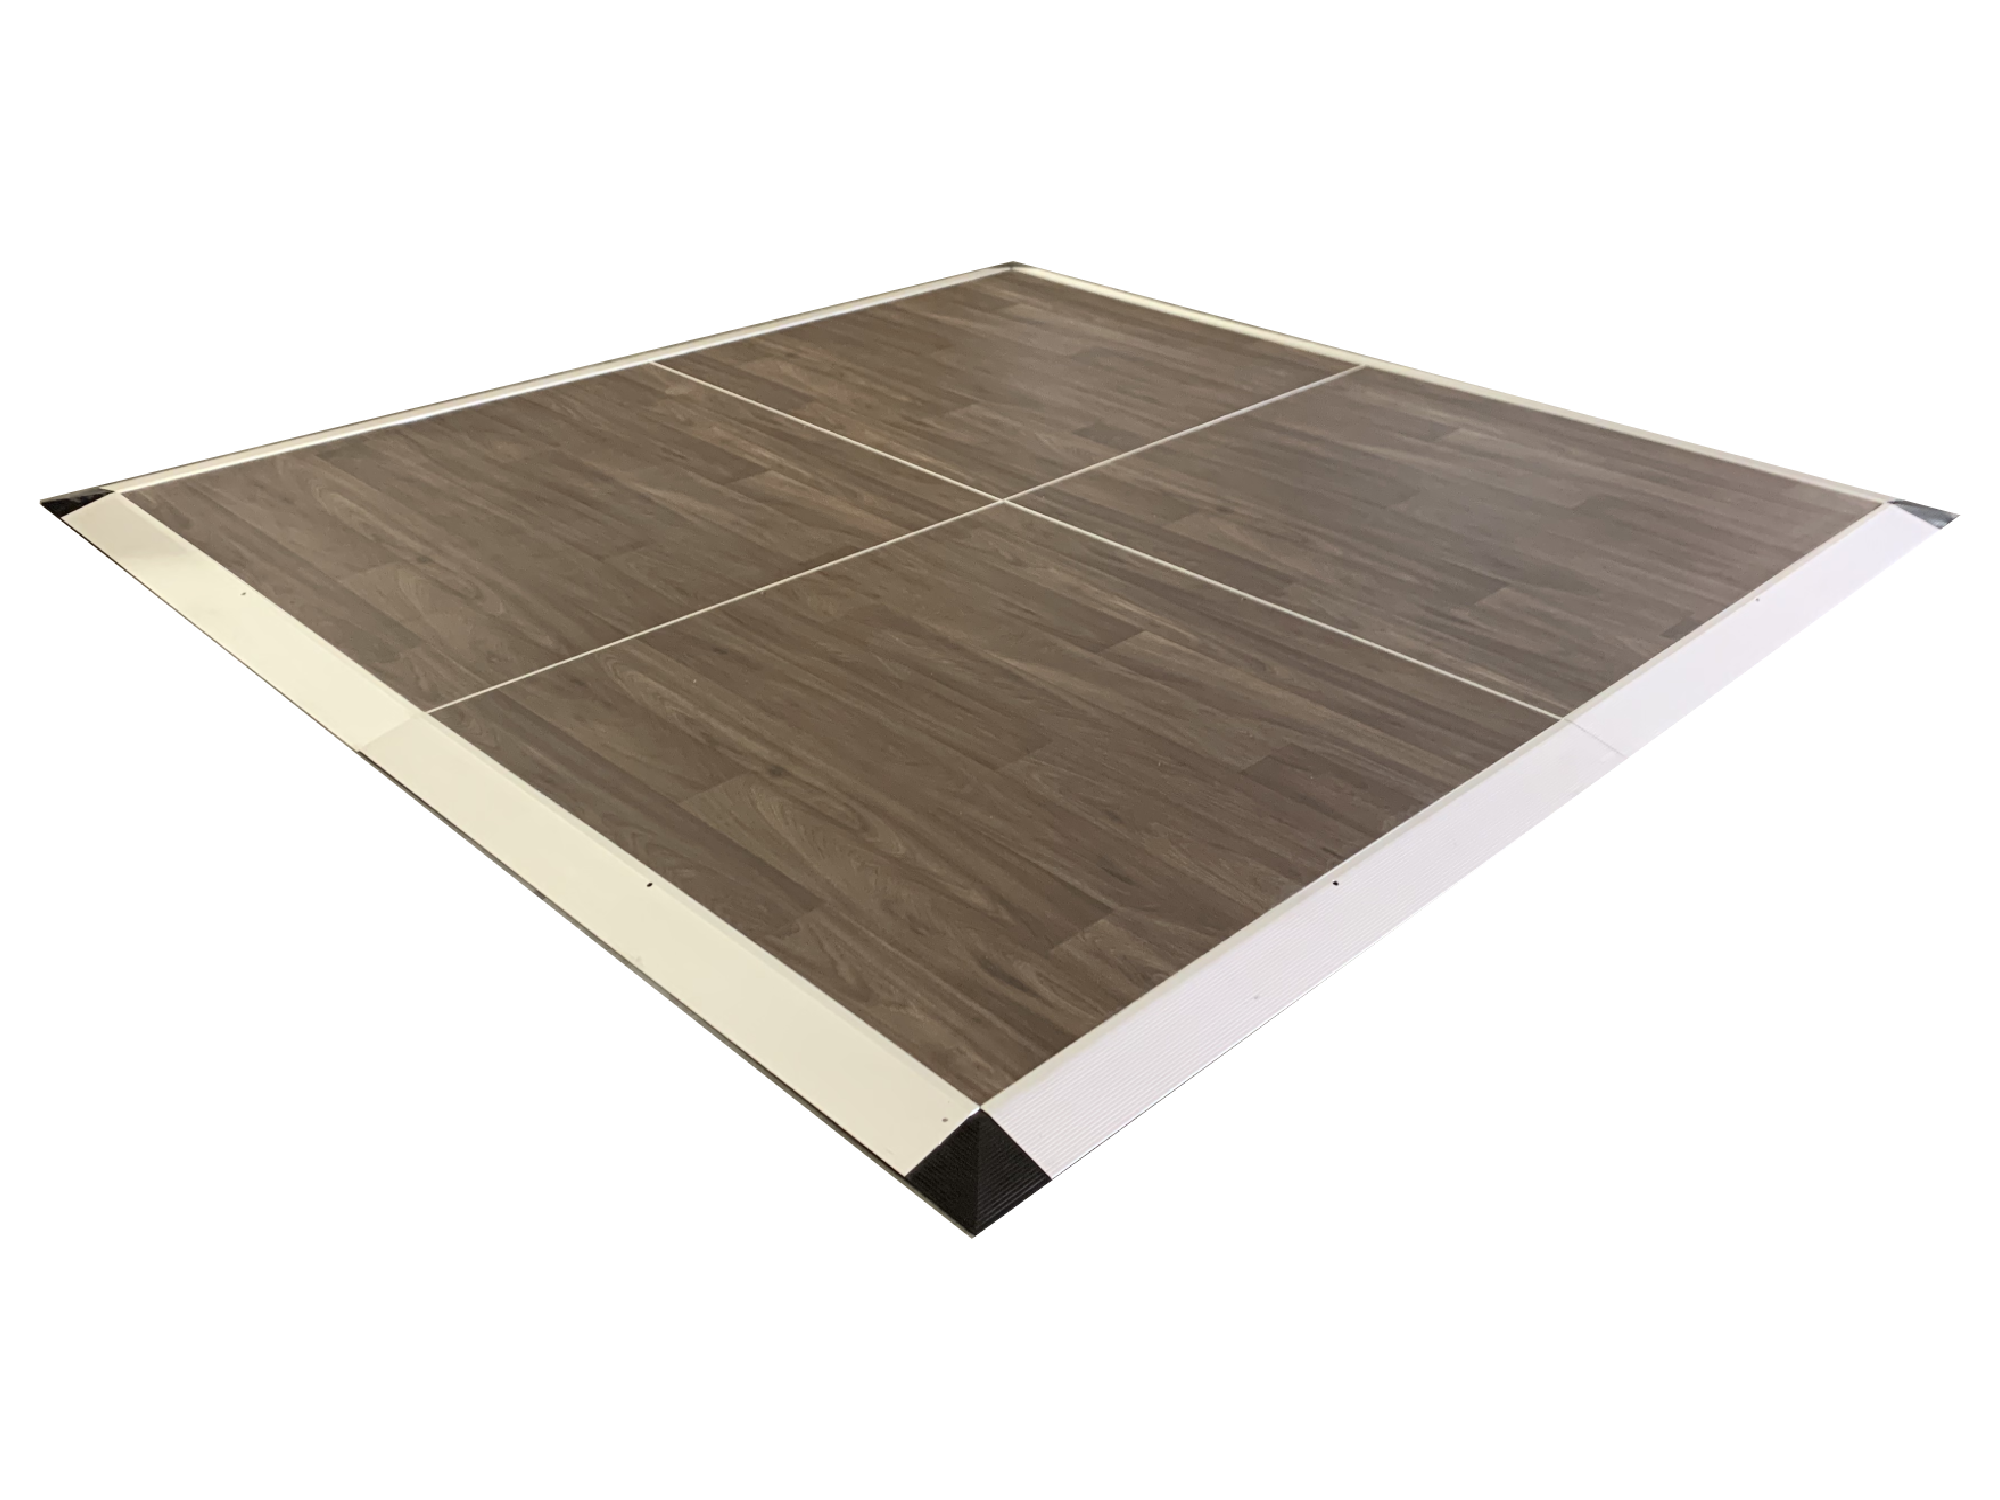 WALNUT WOODEN DANCE FLOOR (priced by sq. ft.)